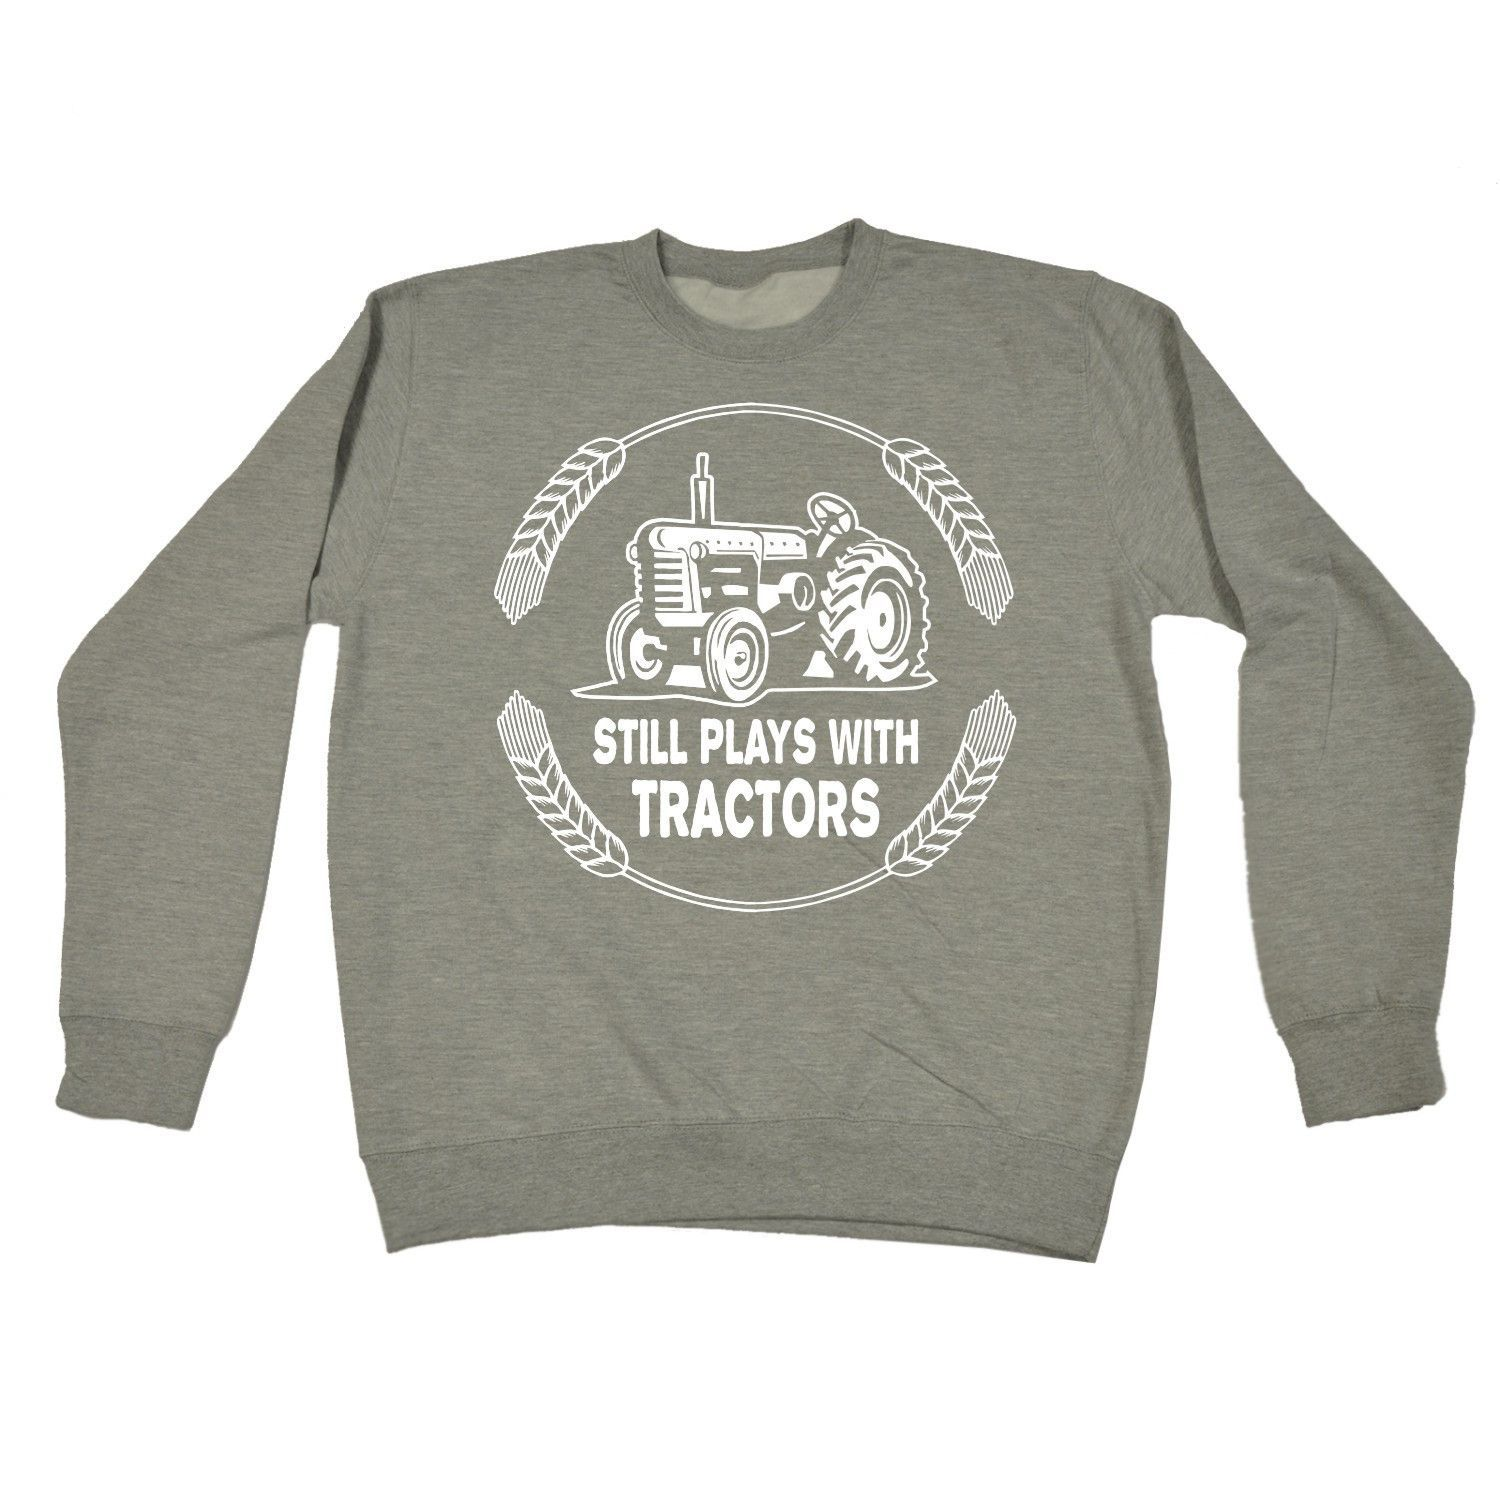 123t USA Still Plays With Tractors Funny Sweatshirt